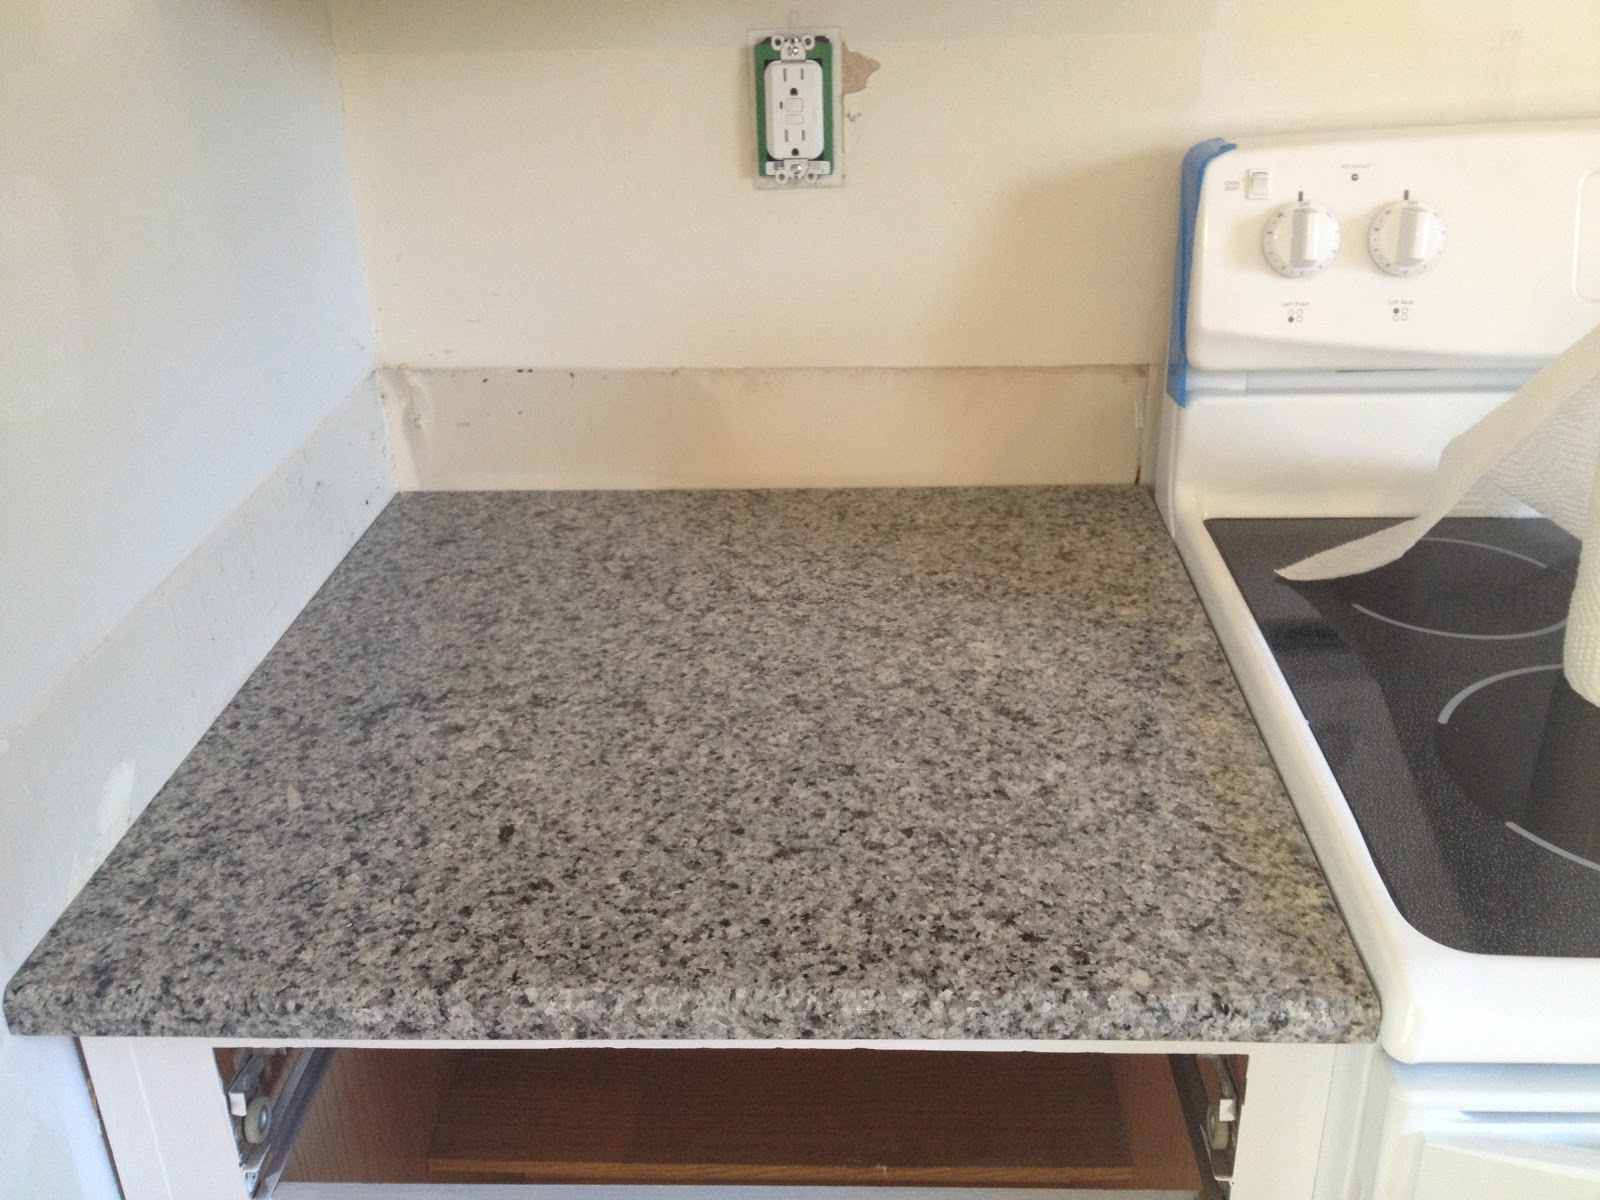 Countertop Paint At Home Depot : Granite Countertop Colors Home Depot Granite countertops which